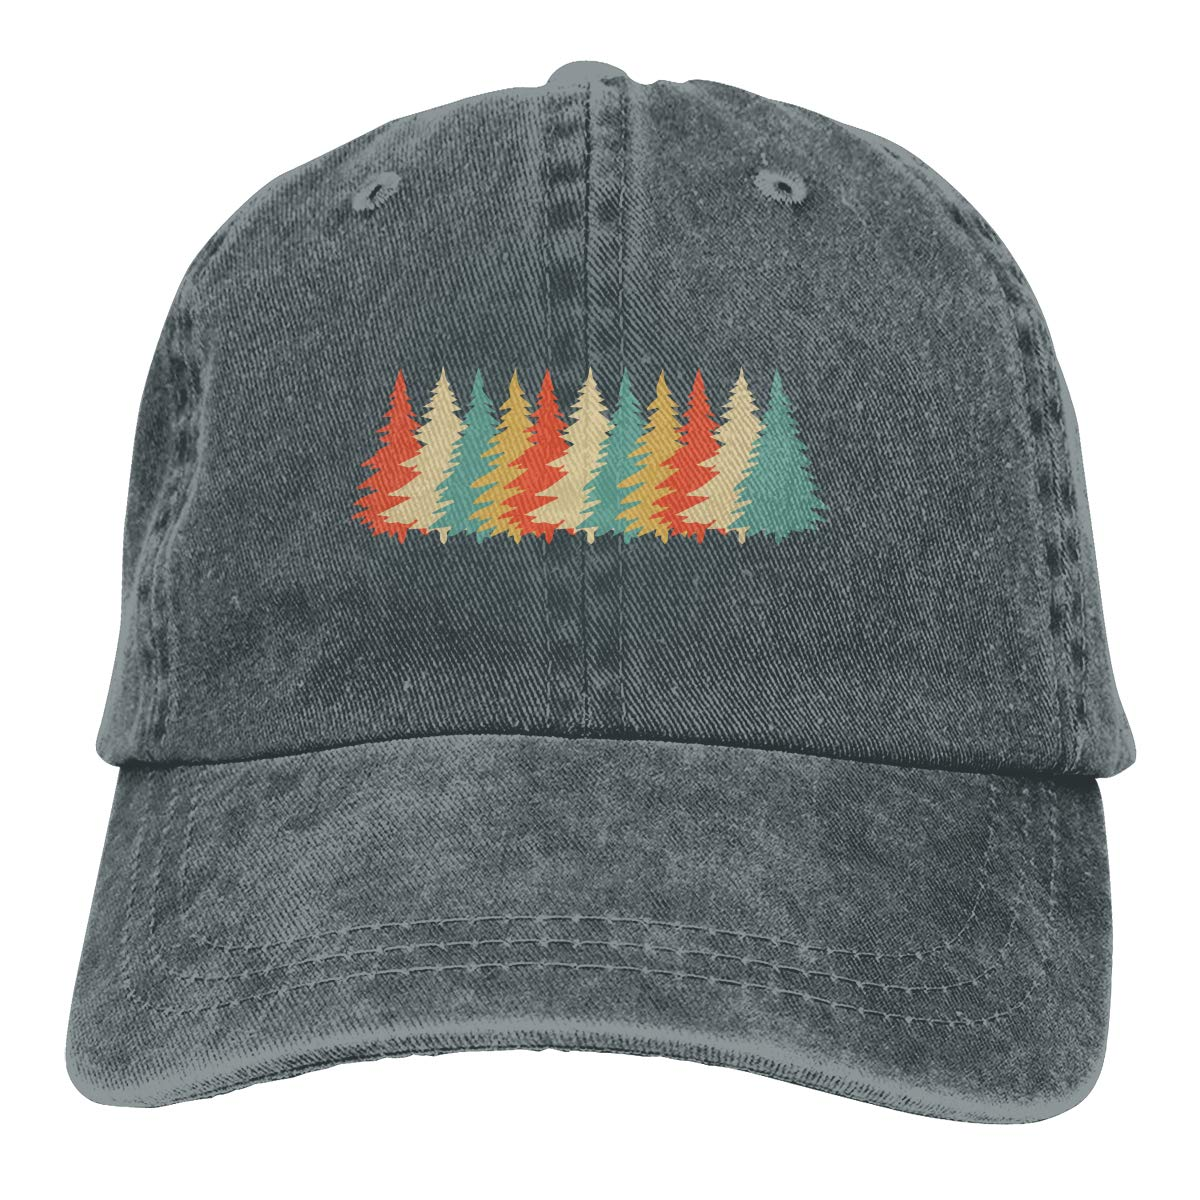 Goldsmith Sally Trees Nature Hiking Forest Unisex Low Profile Washed  Baseball Caps Adjustable Dad Hat at Amazon Men s Clothing store  a49f72452c1